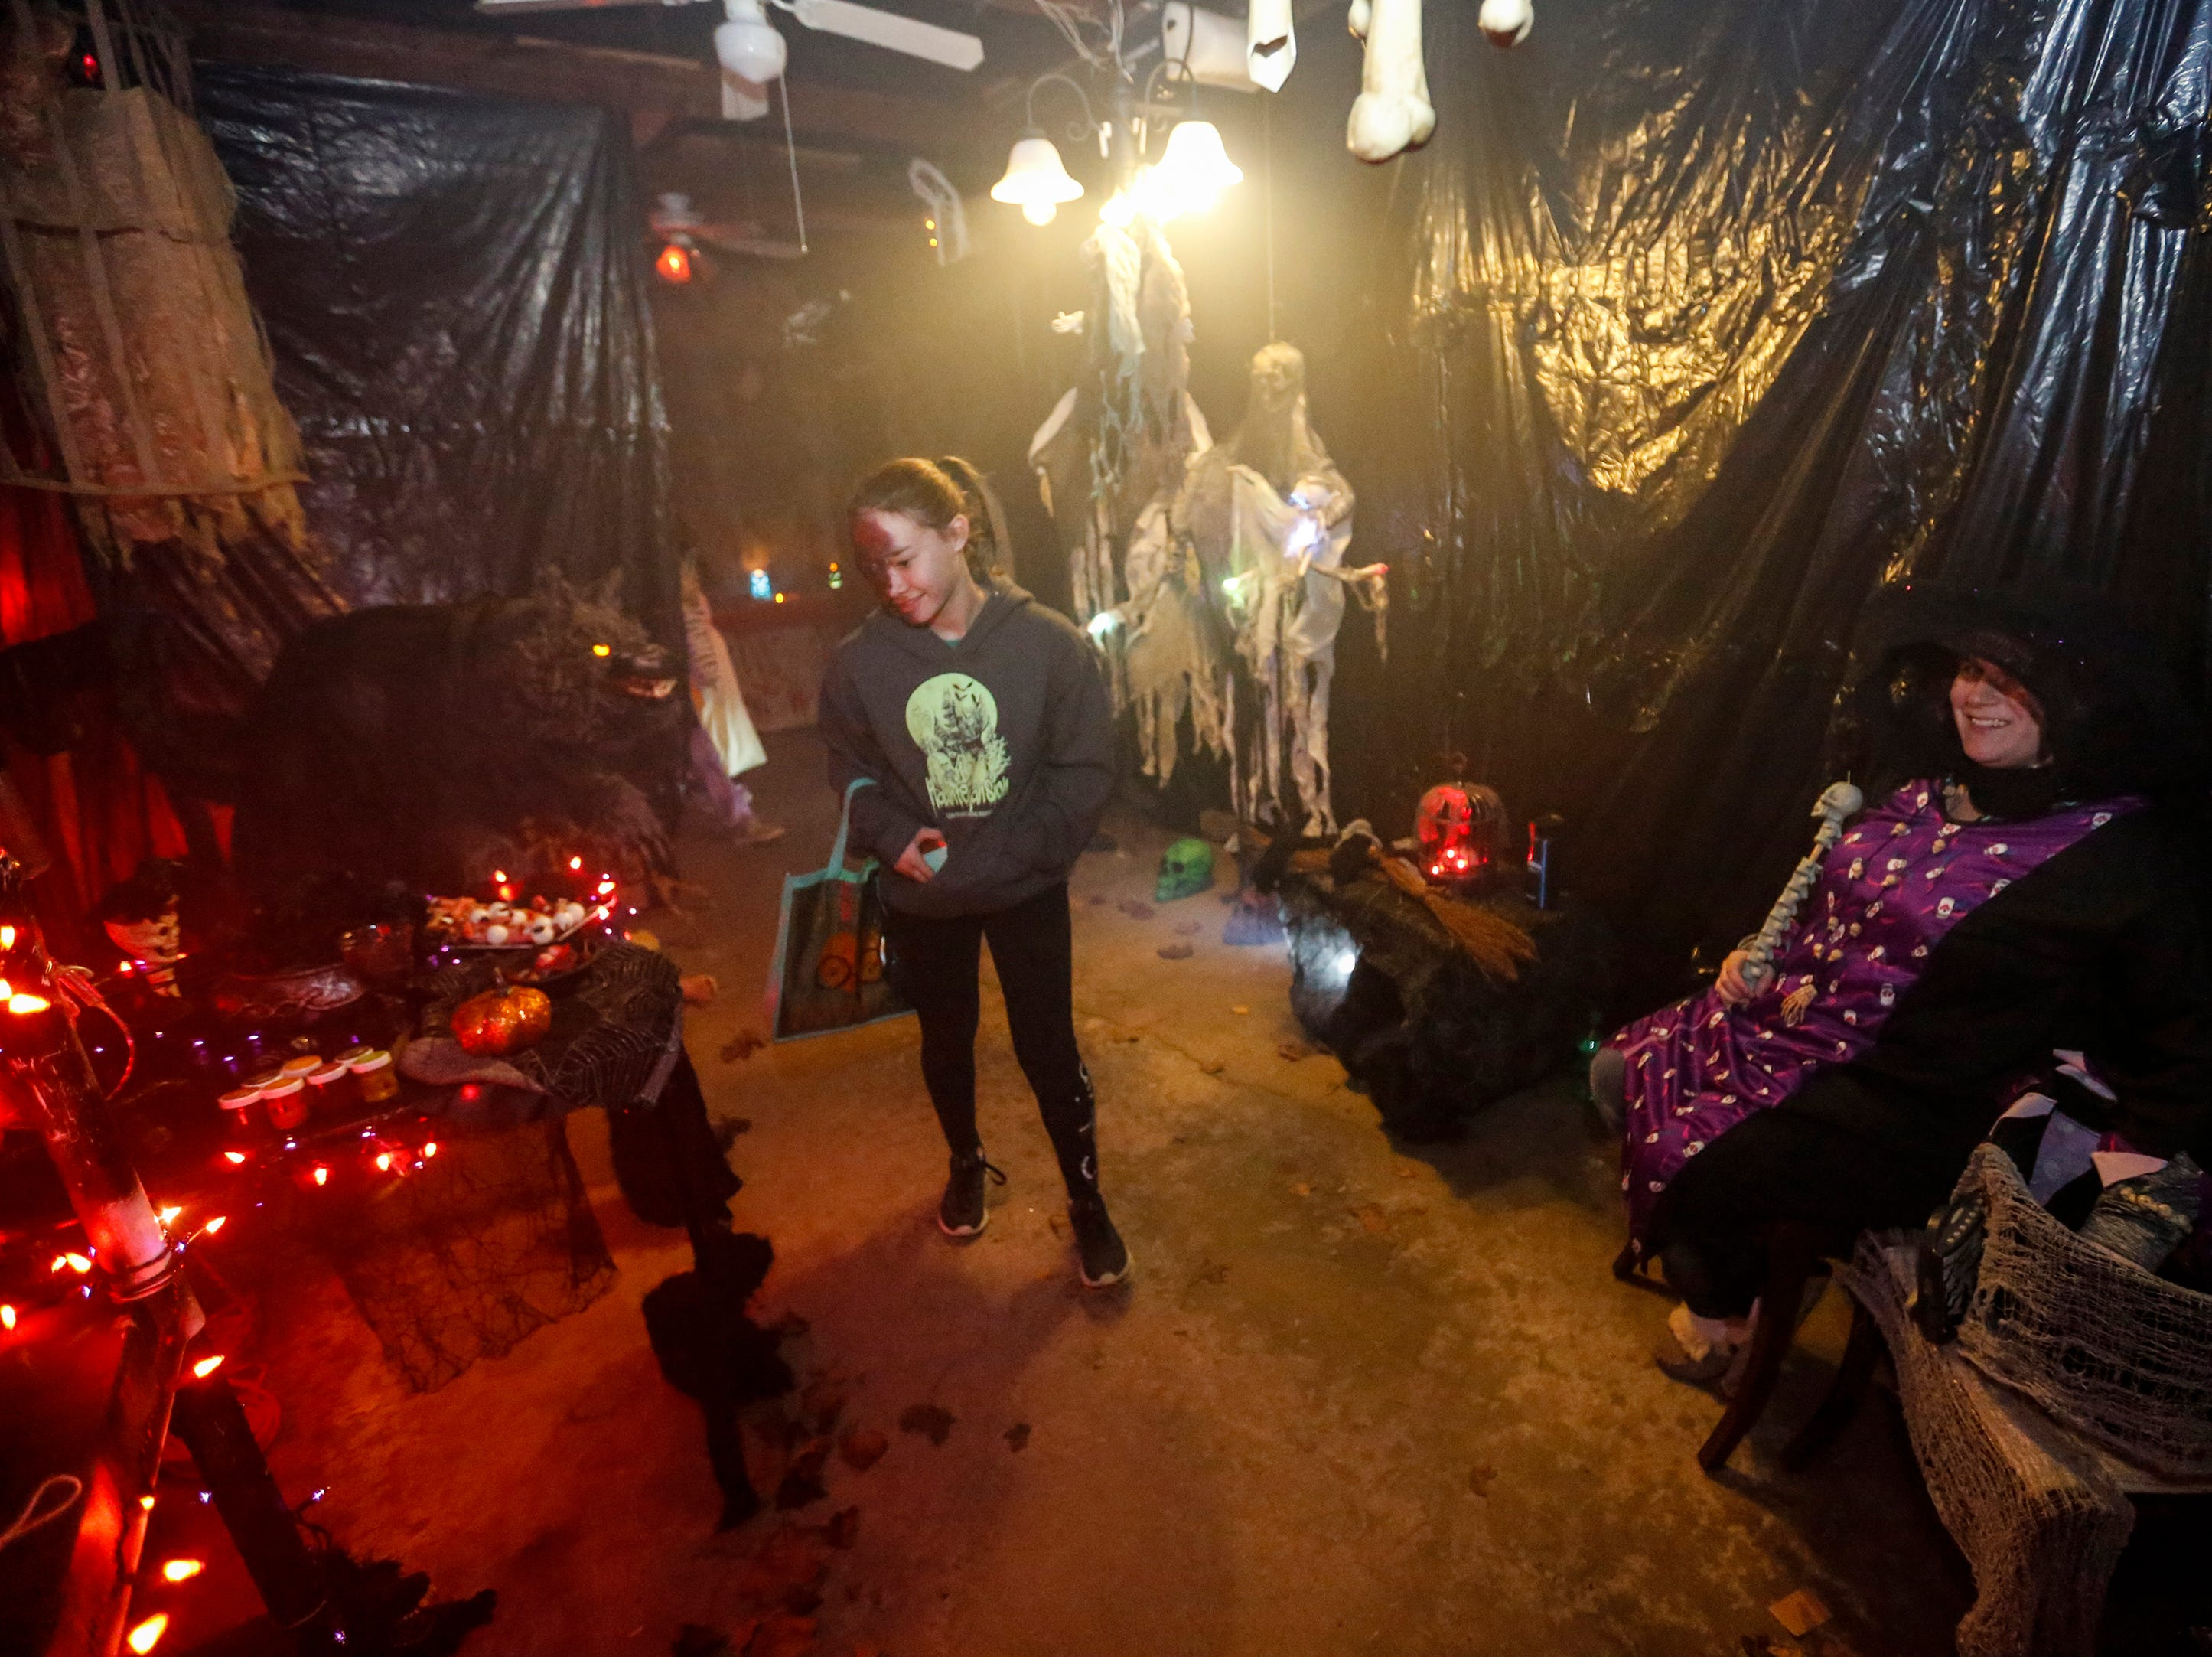 Lea Andures, right, awaits trick-or-treaters making their way through the family's haunted garage on Halloween Wednesday, October 31, 2018, in Manitowoc, Wis. Joshua Clark/USA TODAY NETWORK-Wisconsin